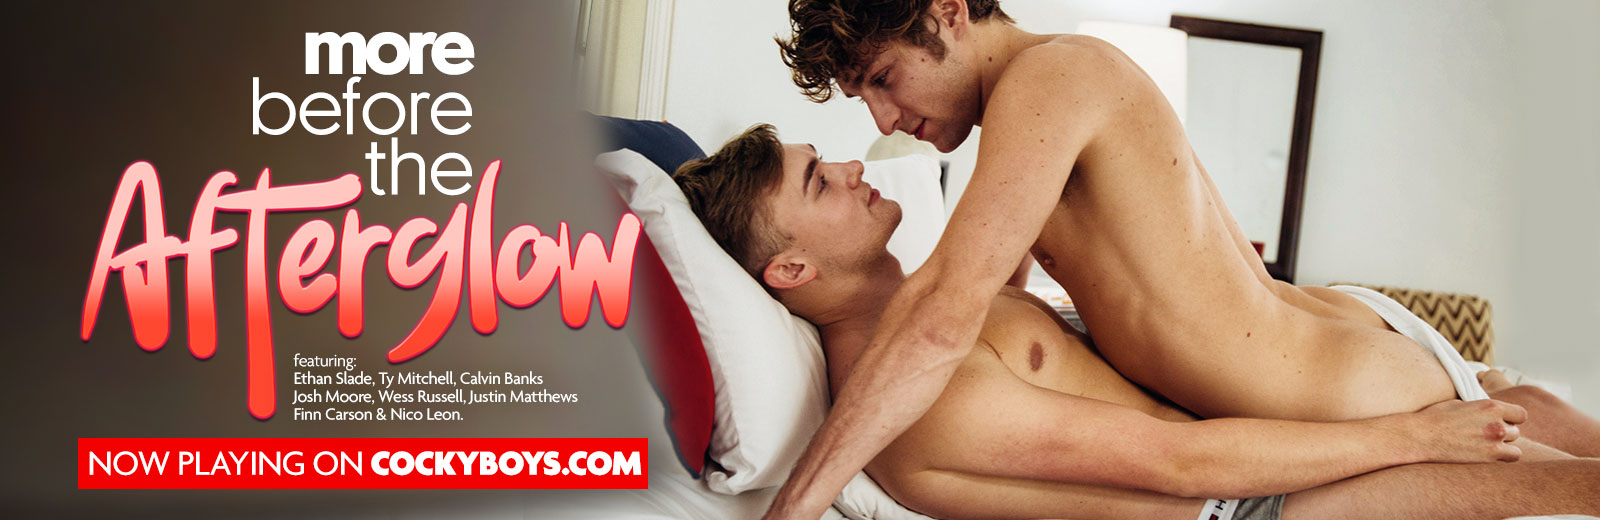 CockyBoys - More Before the Afterglow - Calvin Banks & Finn Carson